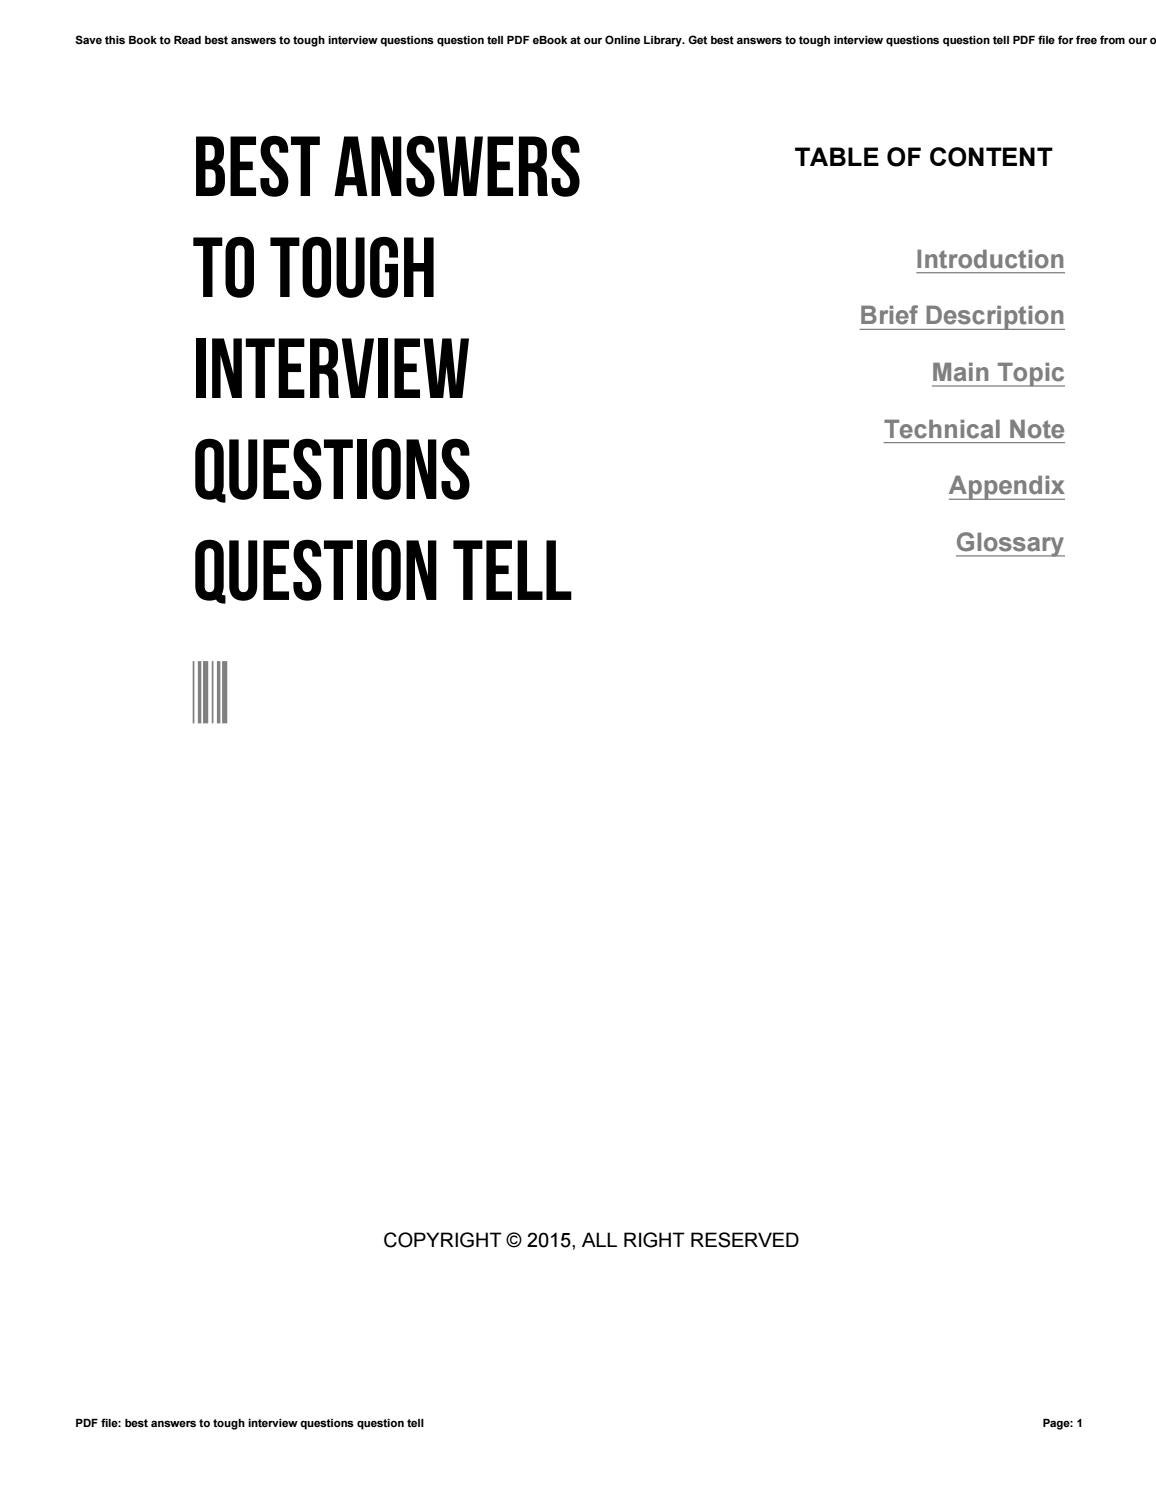 Best Answers To Tough Interview Questions Question Tell By O828